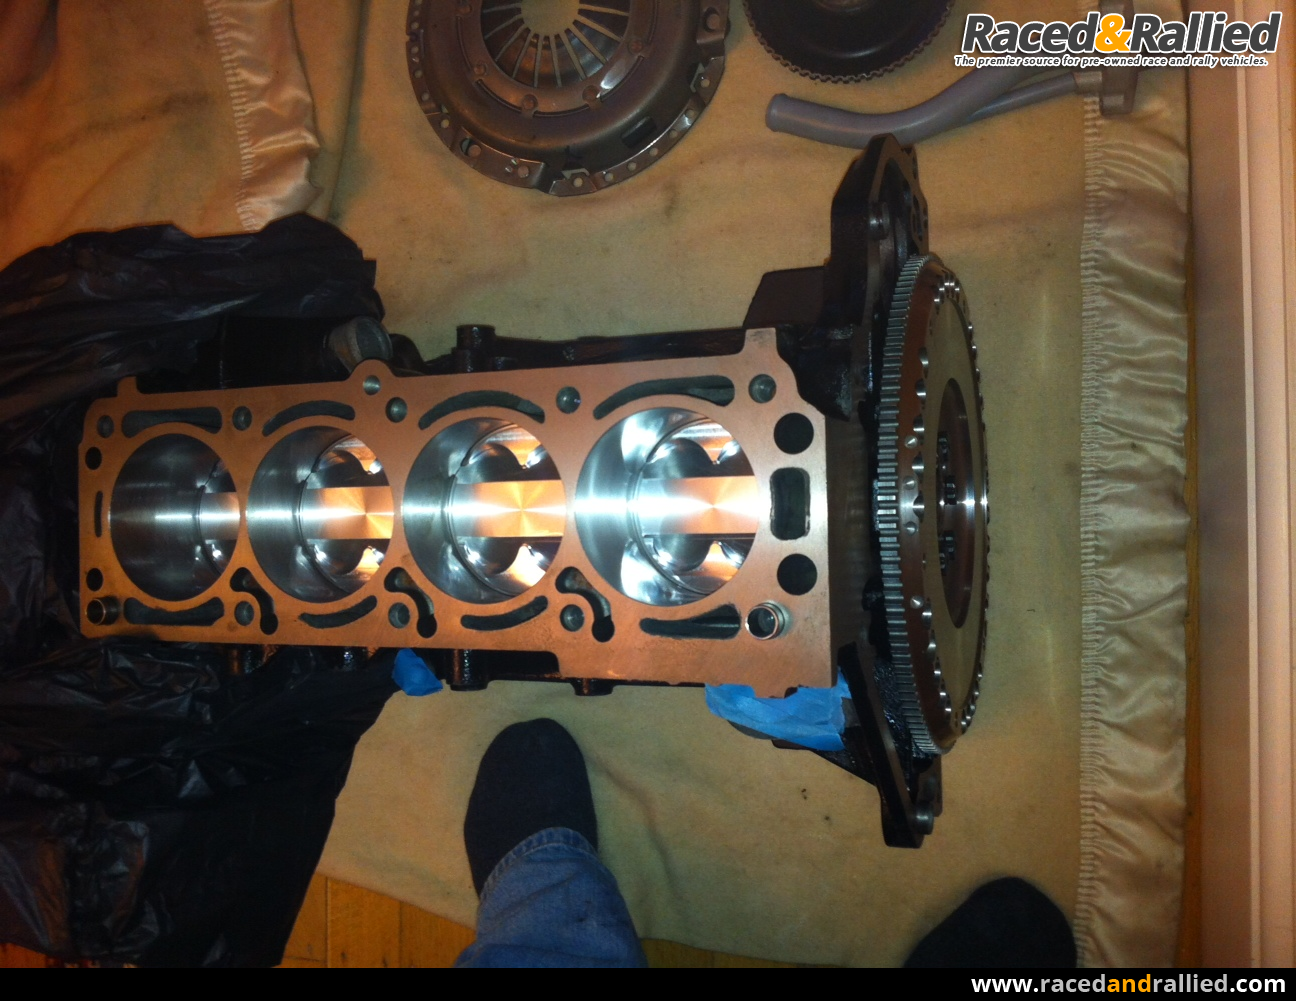 Brand New 2 3 Vauxhall XE Type engine, long steel rods, Cosworth